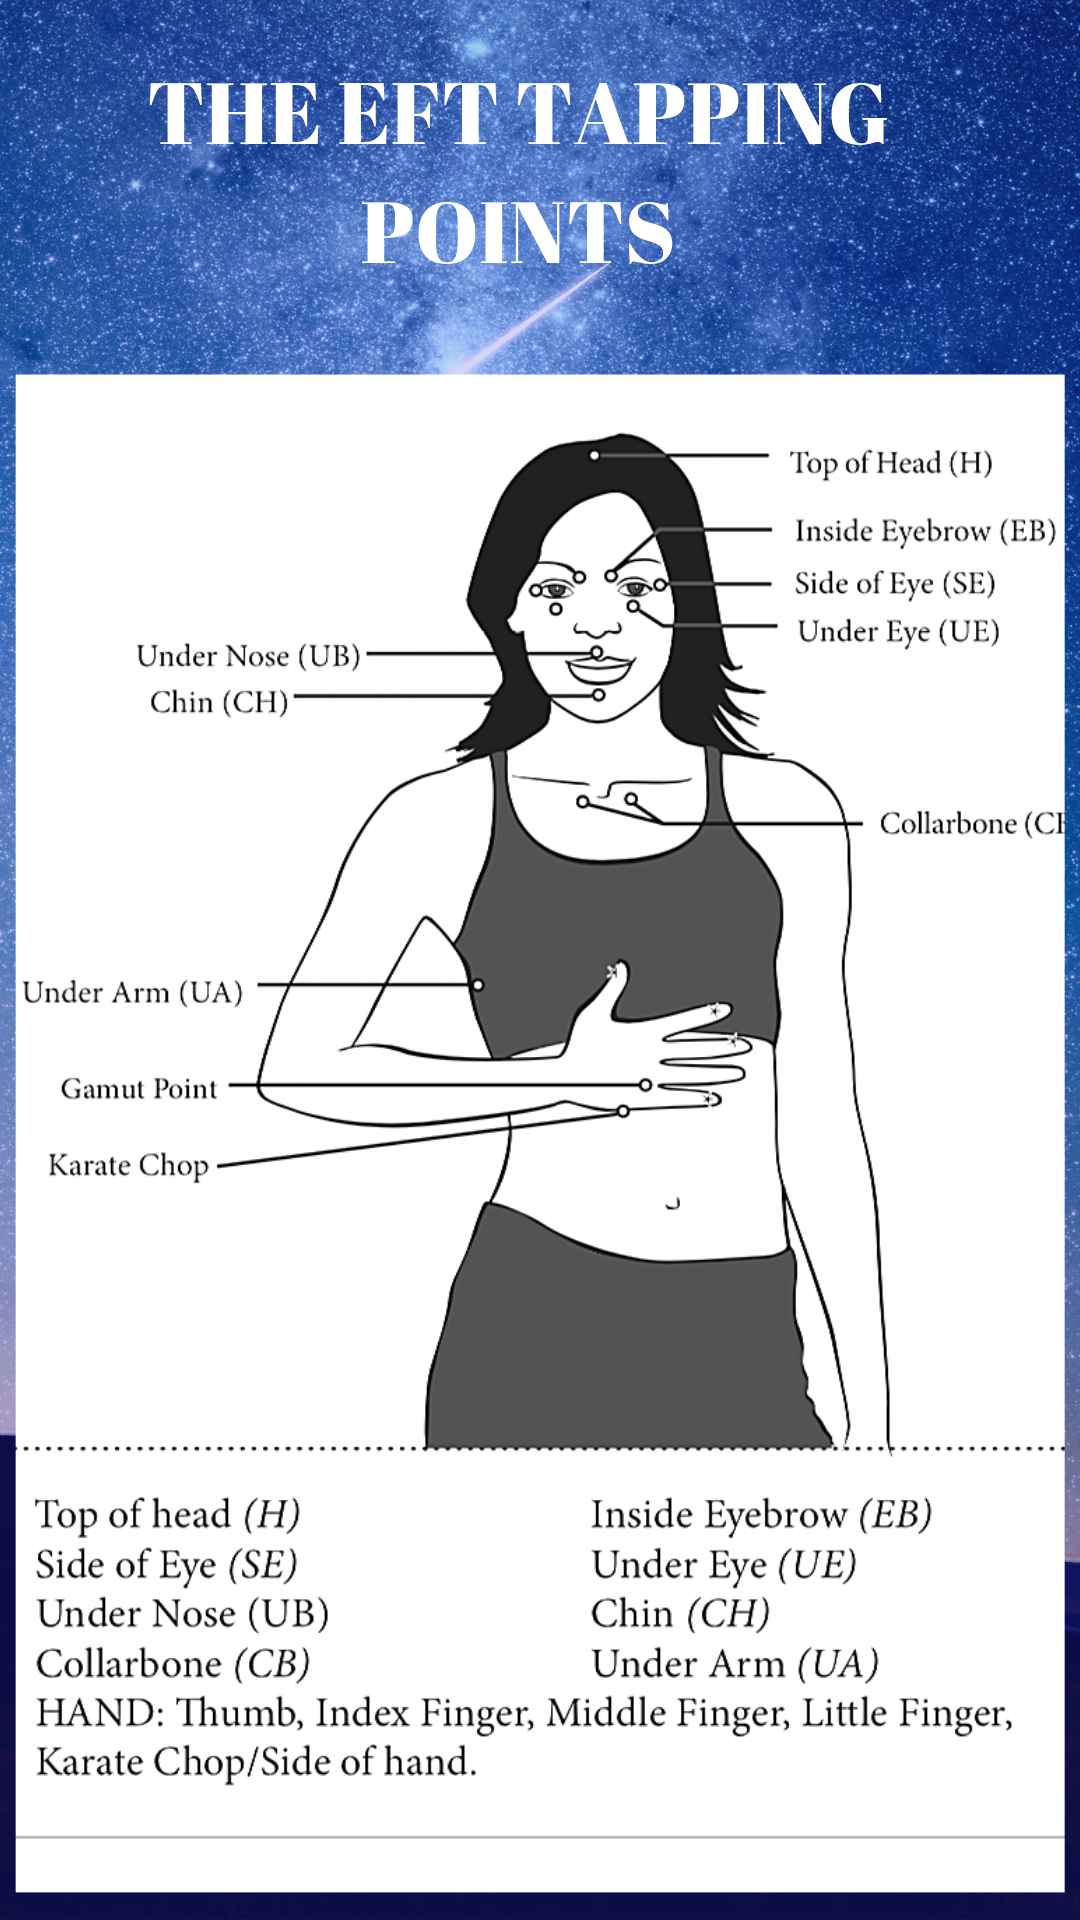 EFT TAPPING DIAGRAM